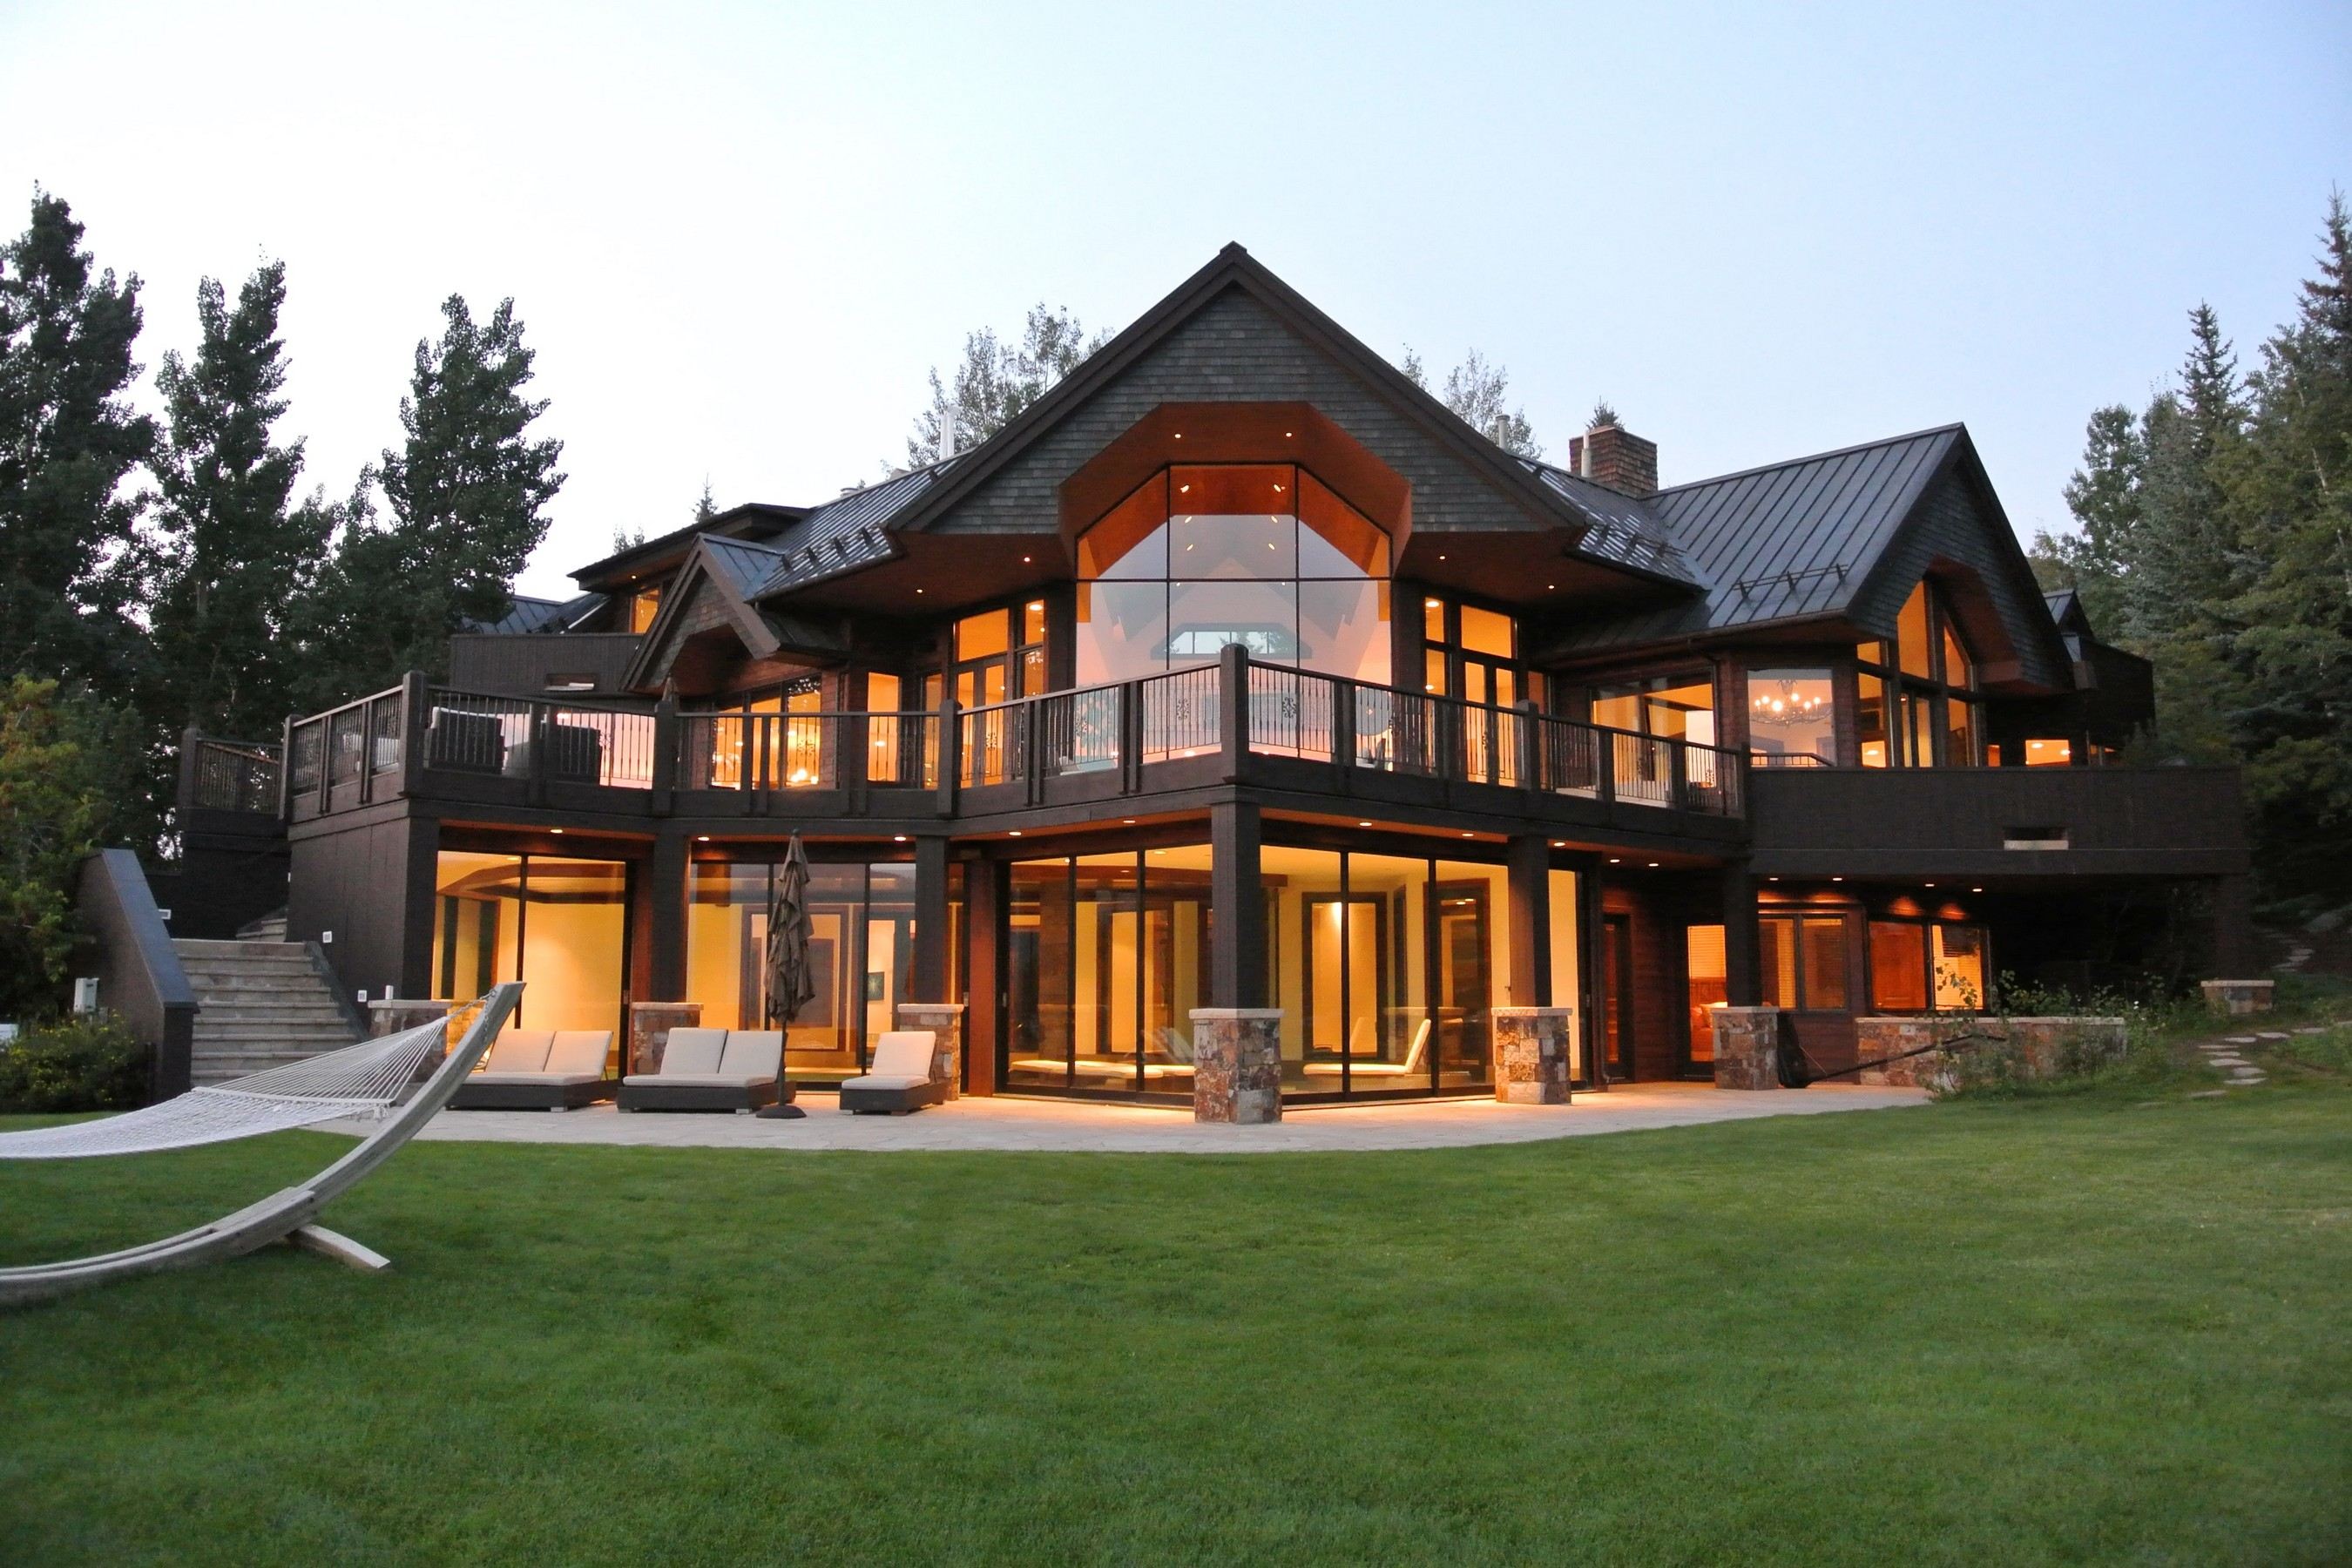 Casa Unifamiliar por un Venta en Front Row in Starwood 876 South Starwood Drive Aspen, Colorado, 81611 Estados Unidos